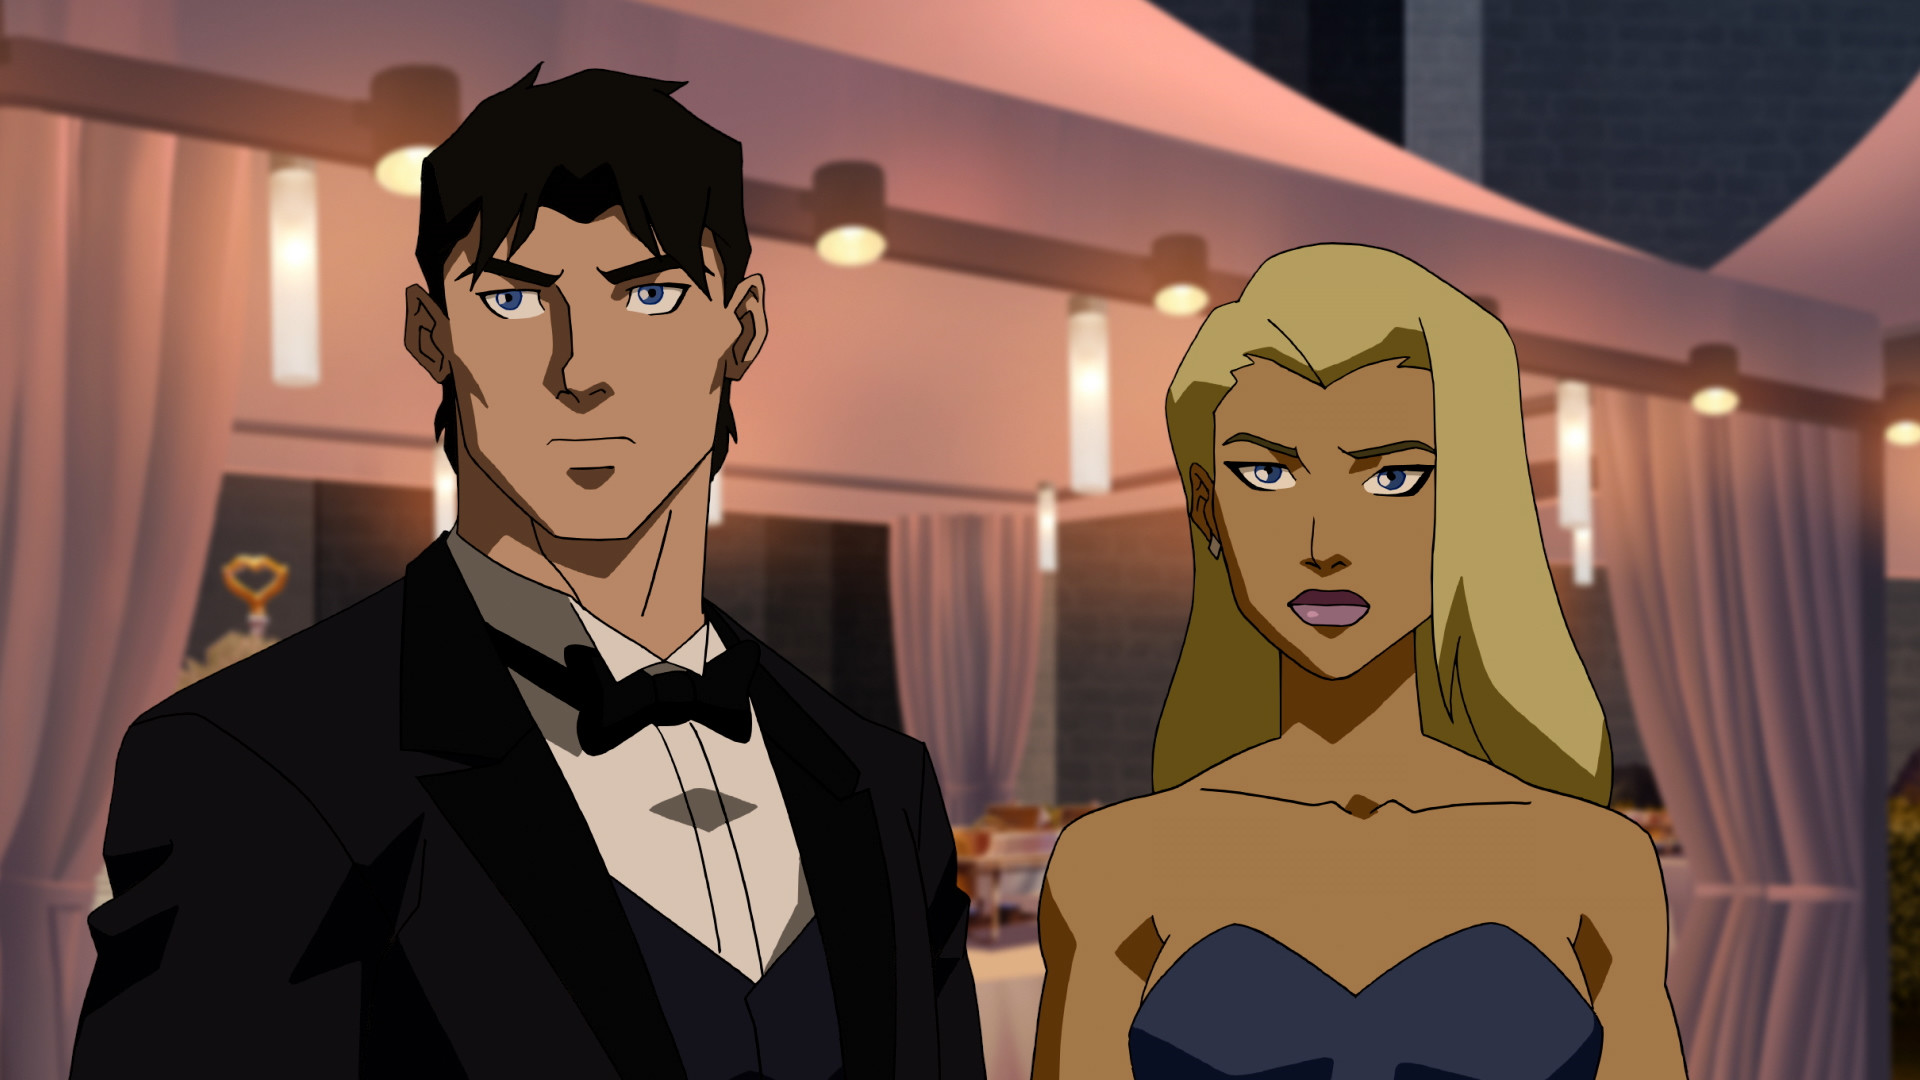 1920x1080 Nightwing and Tigress in Young Justice: Outsiders ep 2 (Credit: DC Universe)